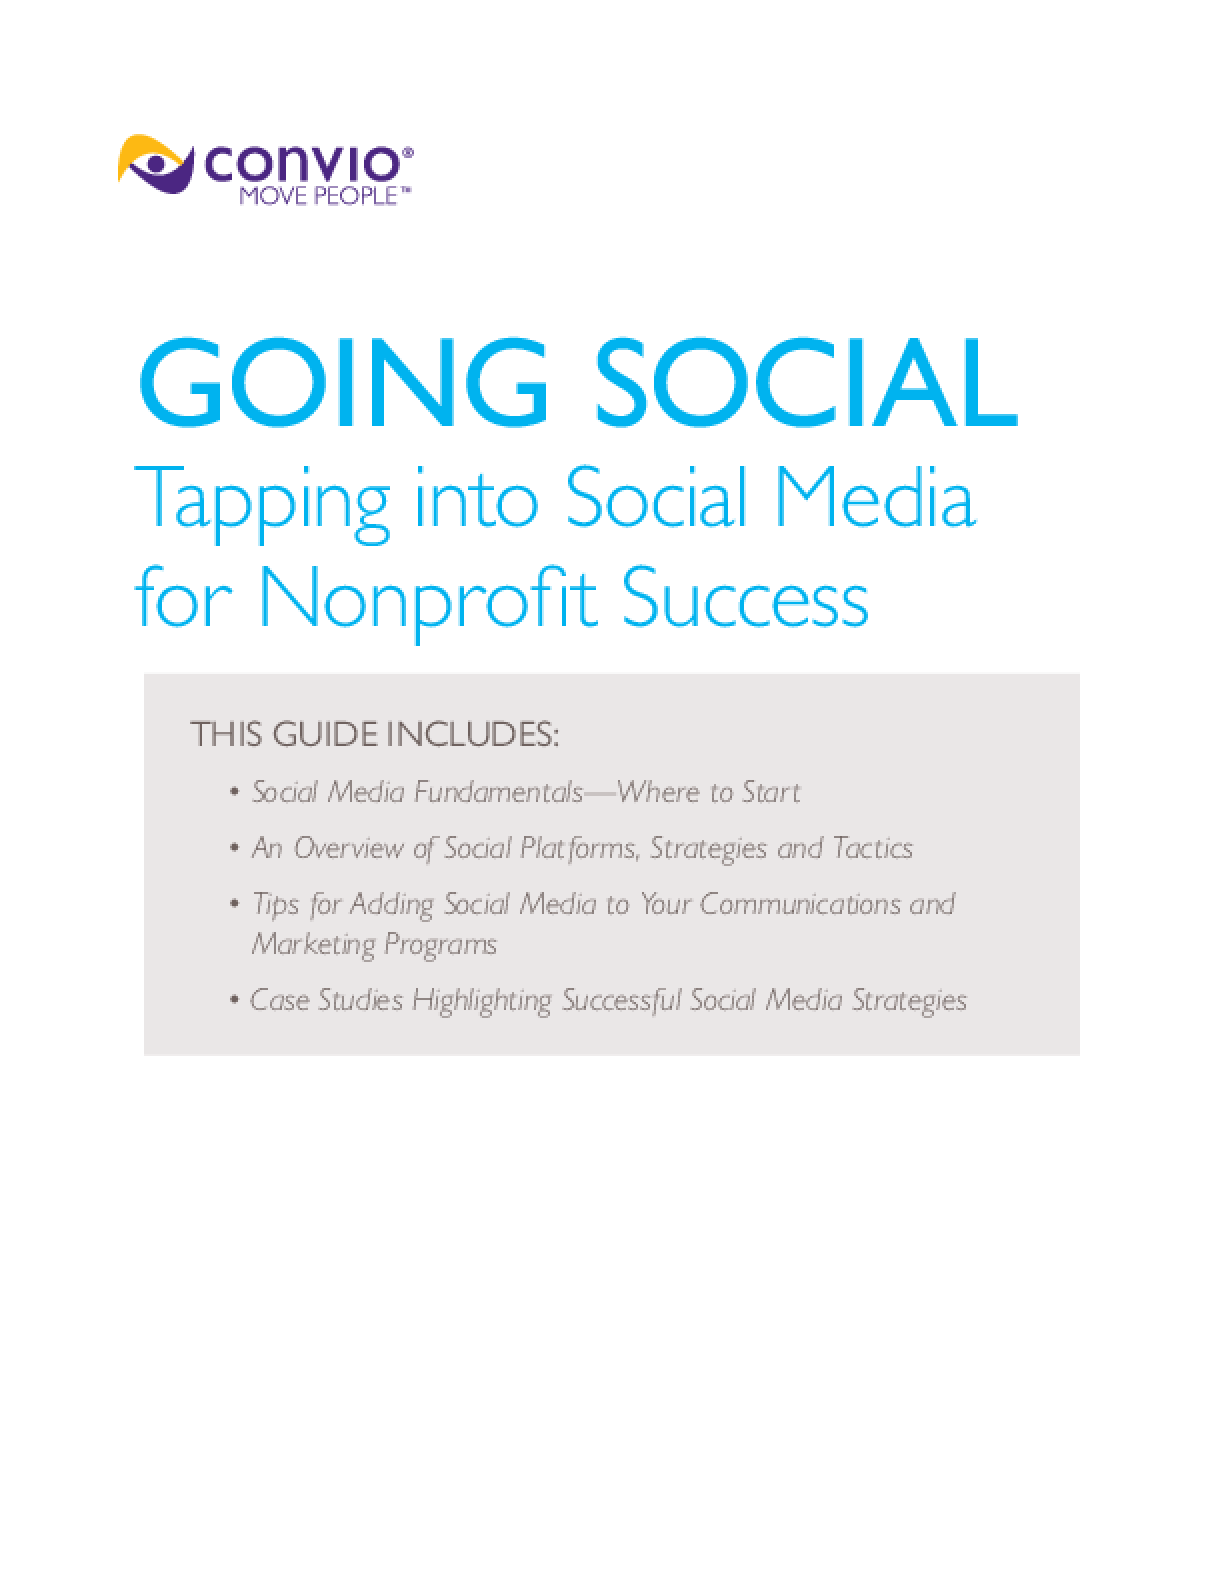 Going Social: Tapping Into Social Media for Nonprofit Success